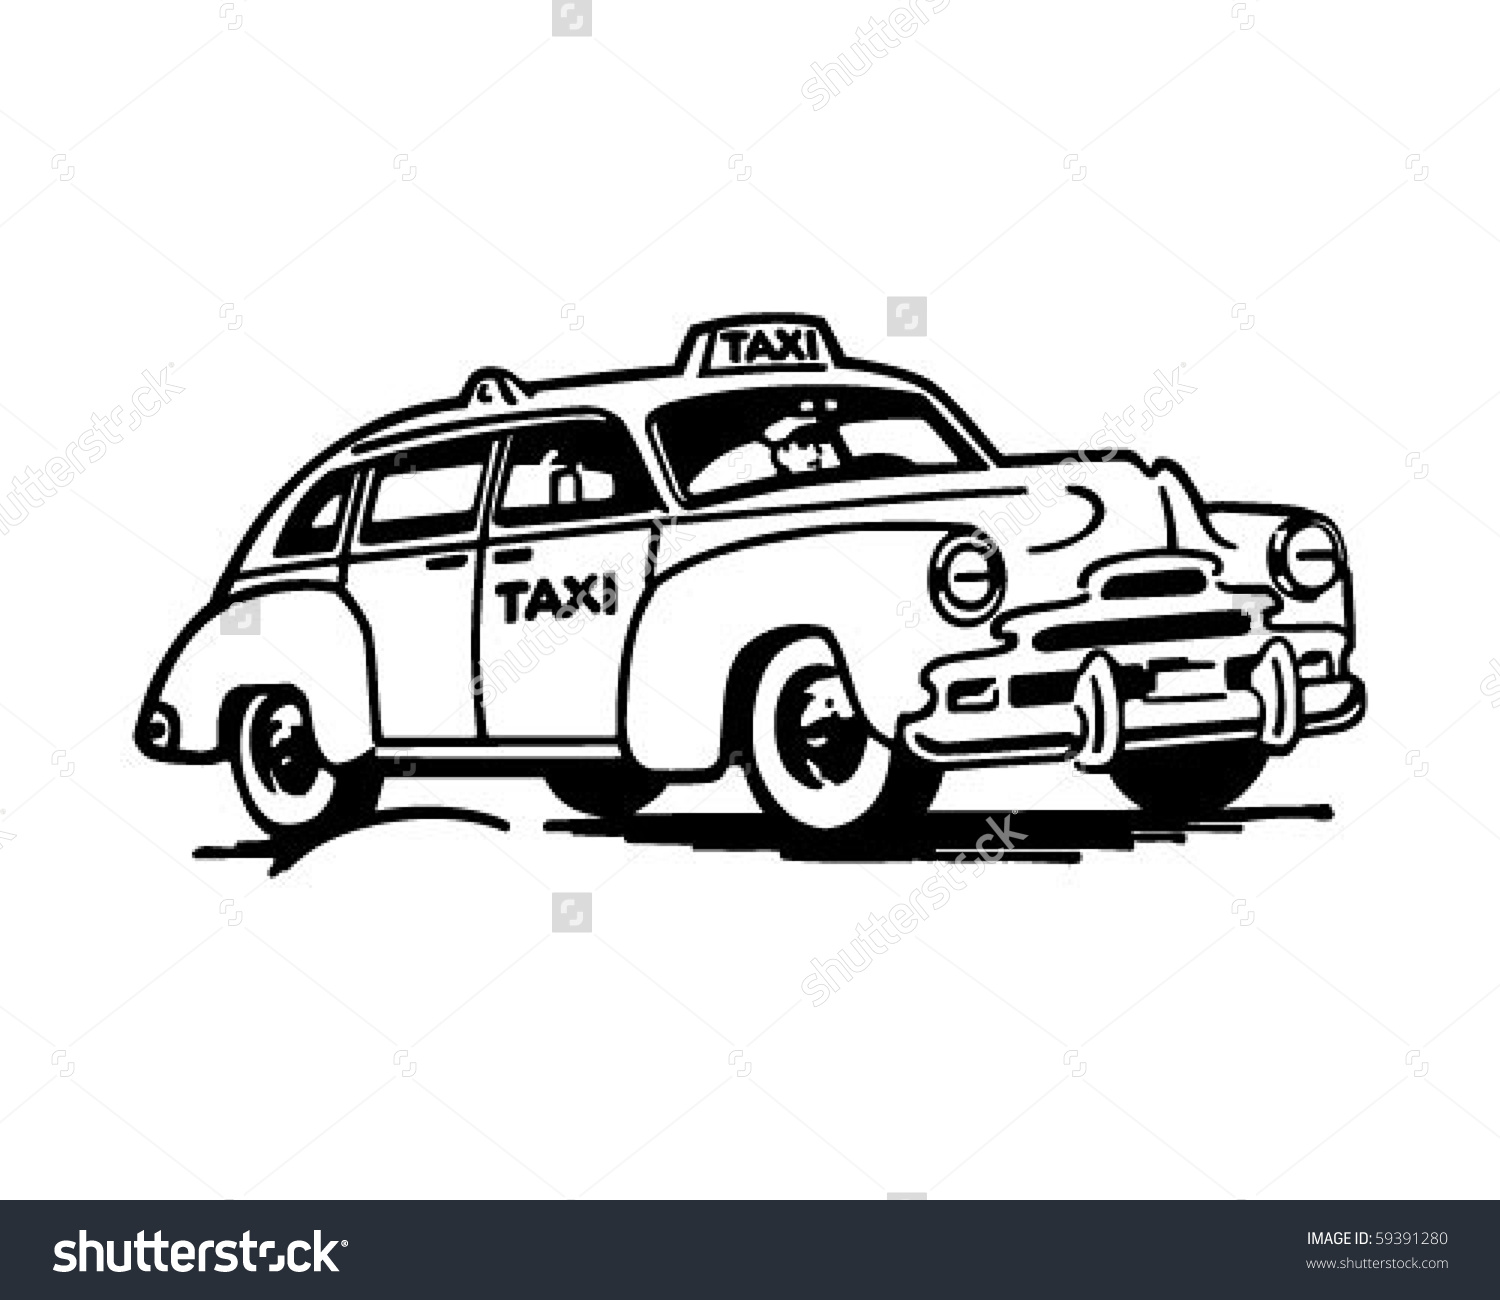 Taxicab Retro Clip Art Stock Vector 59391280.